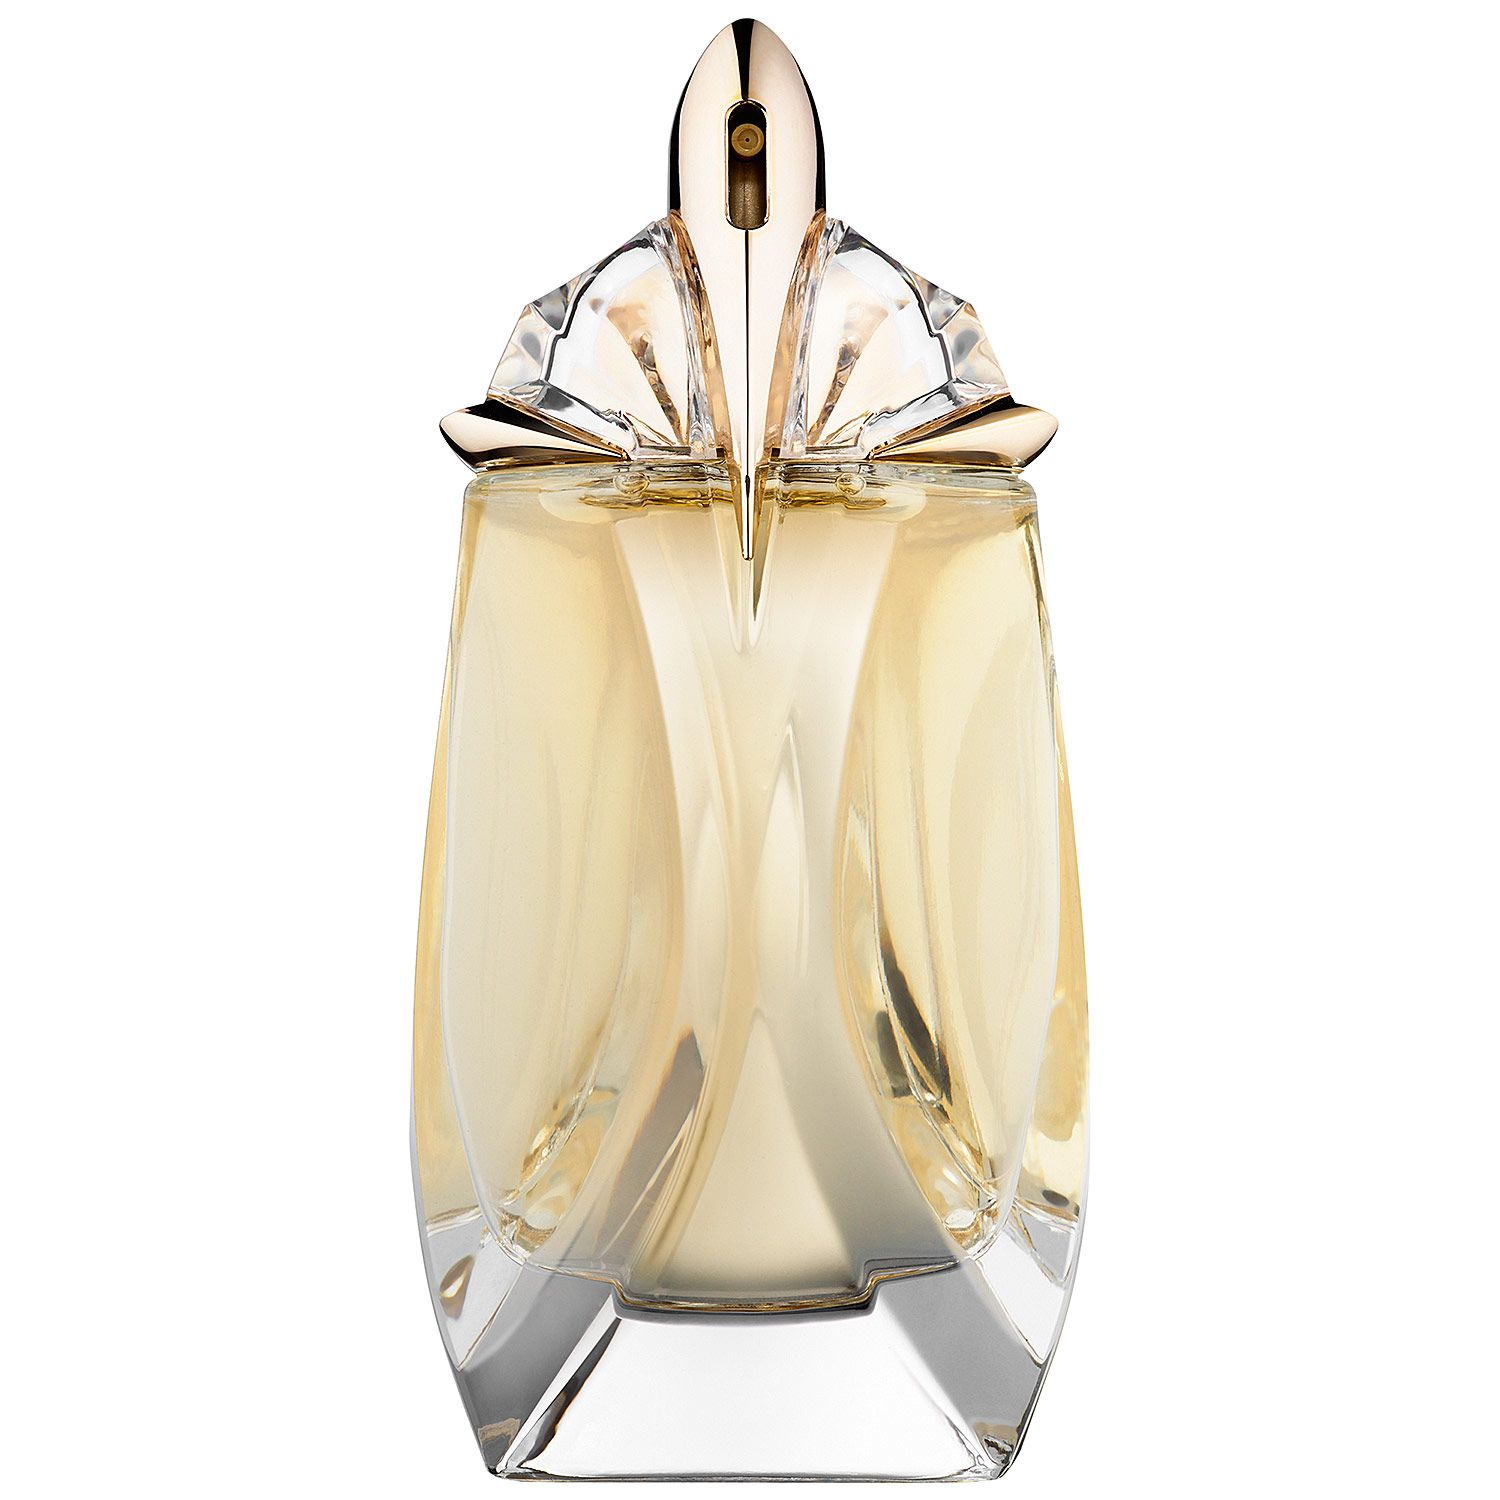 New At Sephora Thierry Mugler Alien Eau Extraordinaire Perfume